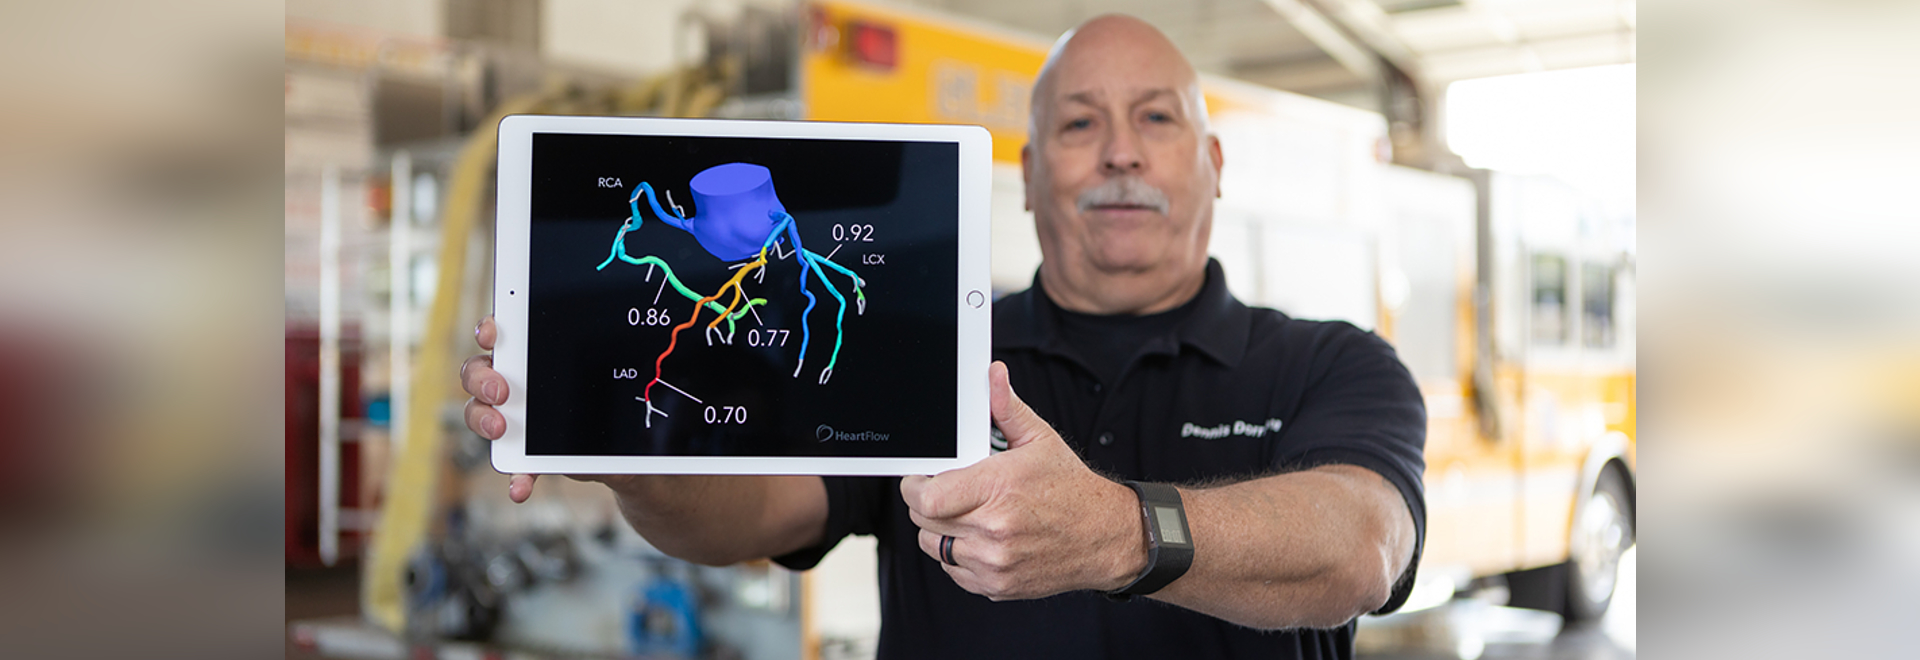 HeartFlow turns a regular CT scan of the heart into a 3D image allowing doctors to diagnose heart disease in just twenty minutes.